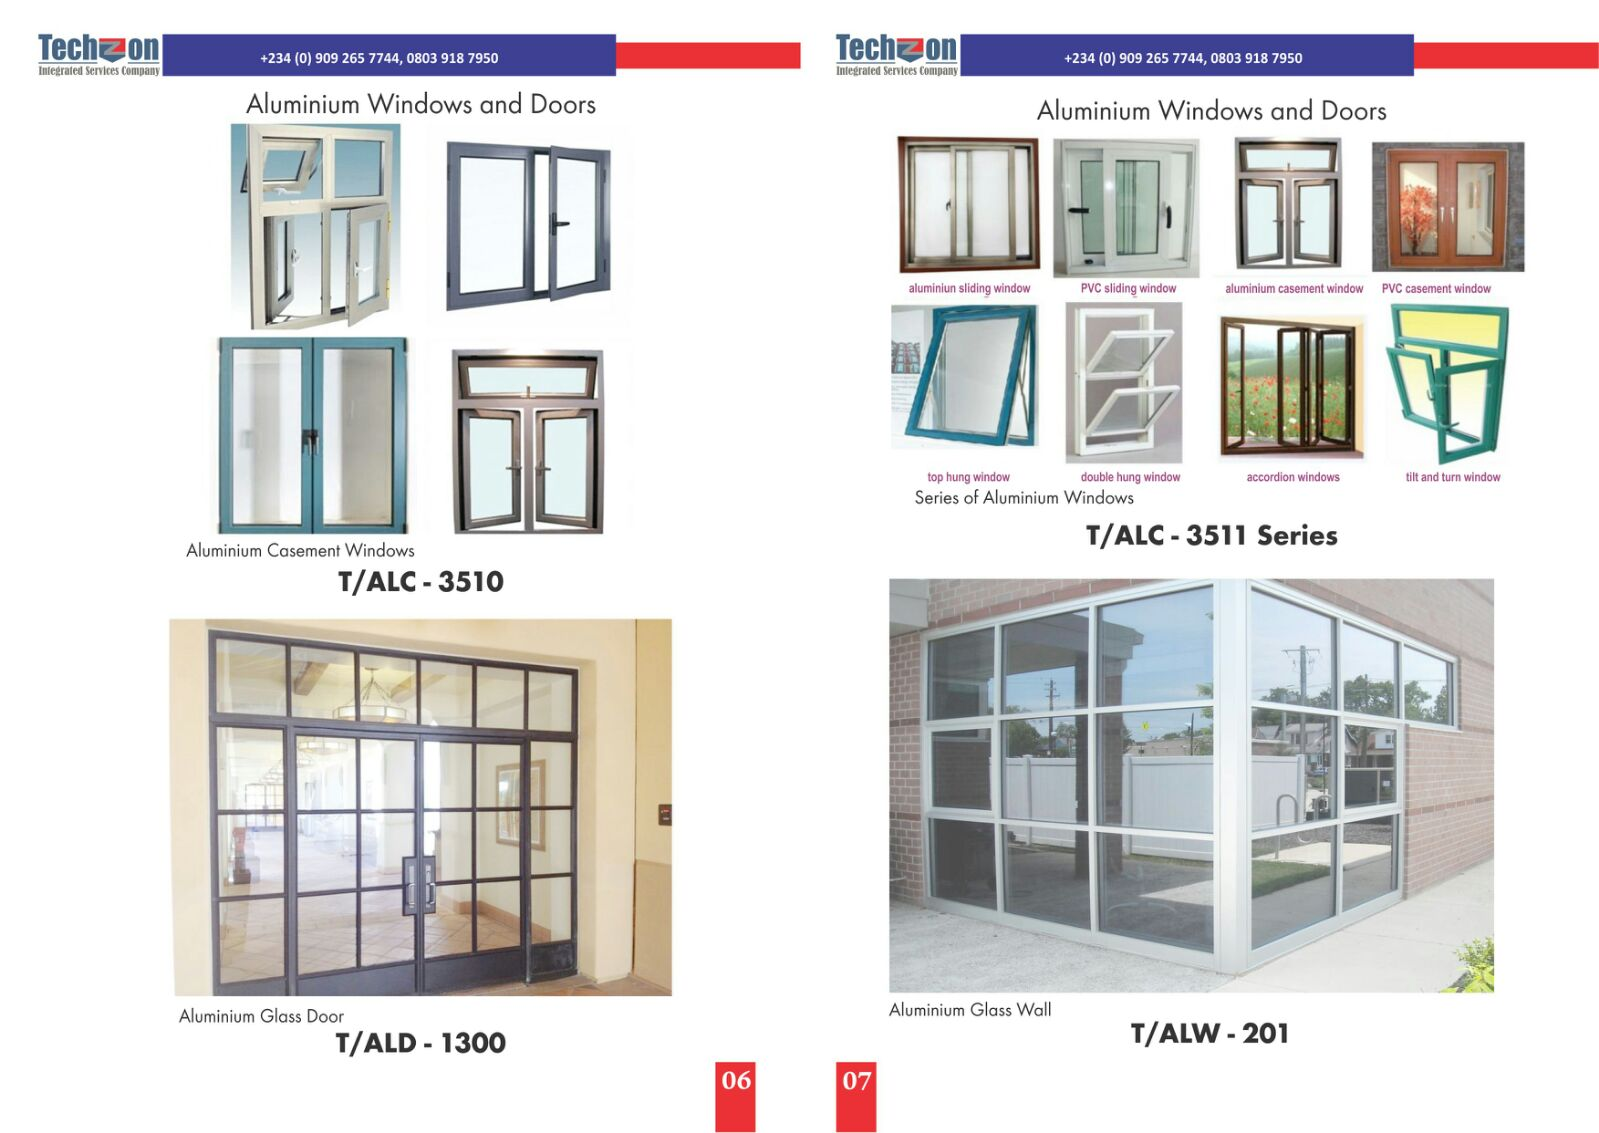 Aluminium Casement Slidding Windows Business Nigeria